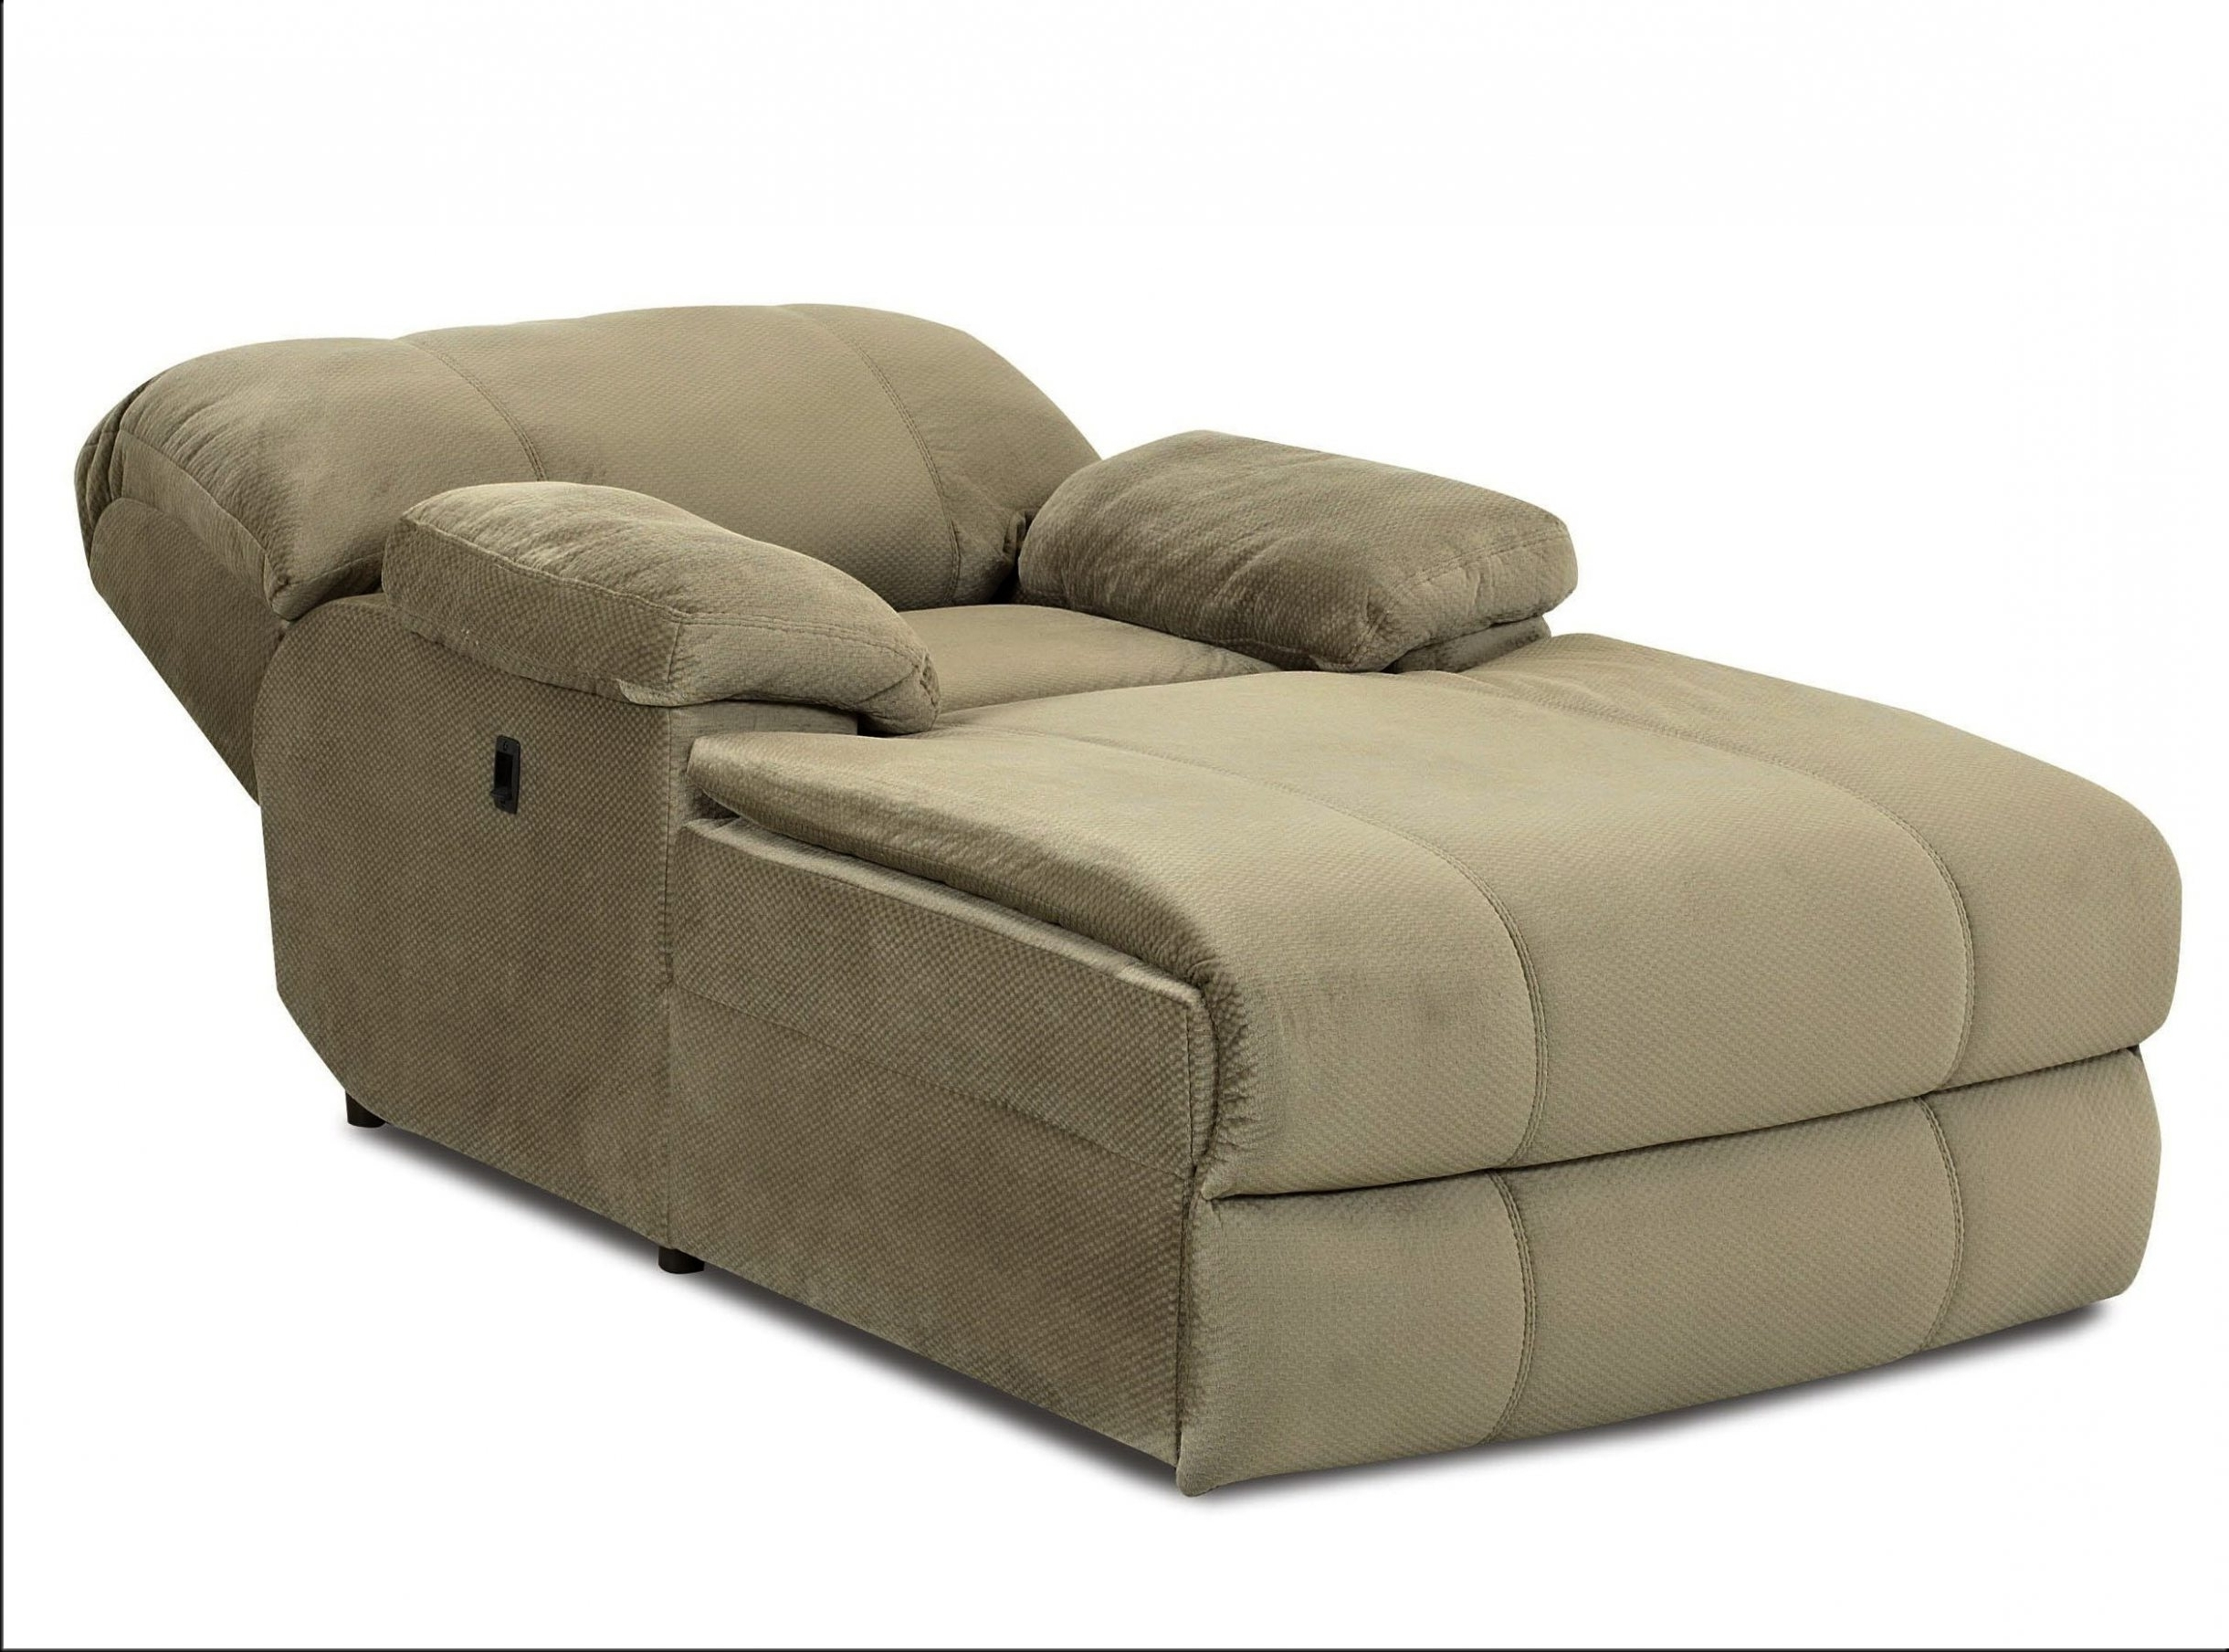 Cheap Unique Chaise Chaise Lounge Indoor Chaise Lounge  ( Cheap Pertaining To Most Popular Cheap Indoor Chaise Lounges (View 4 of 15)